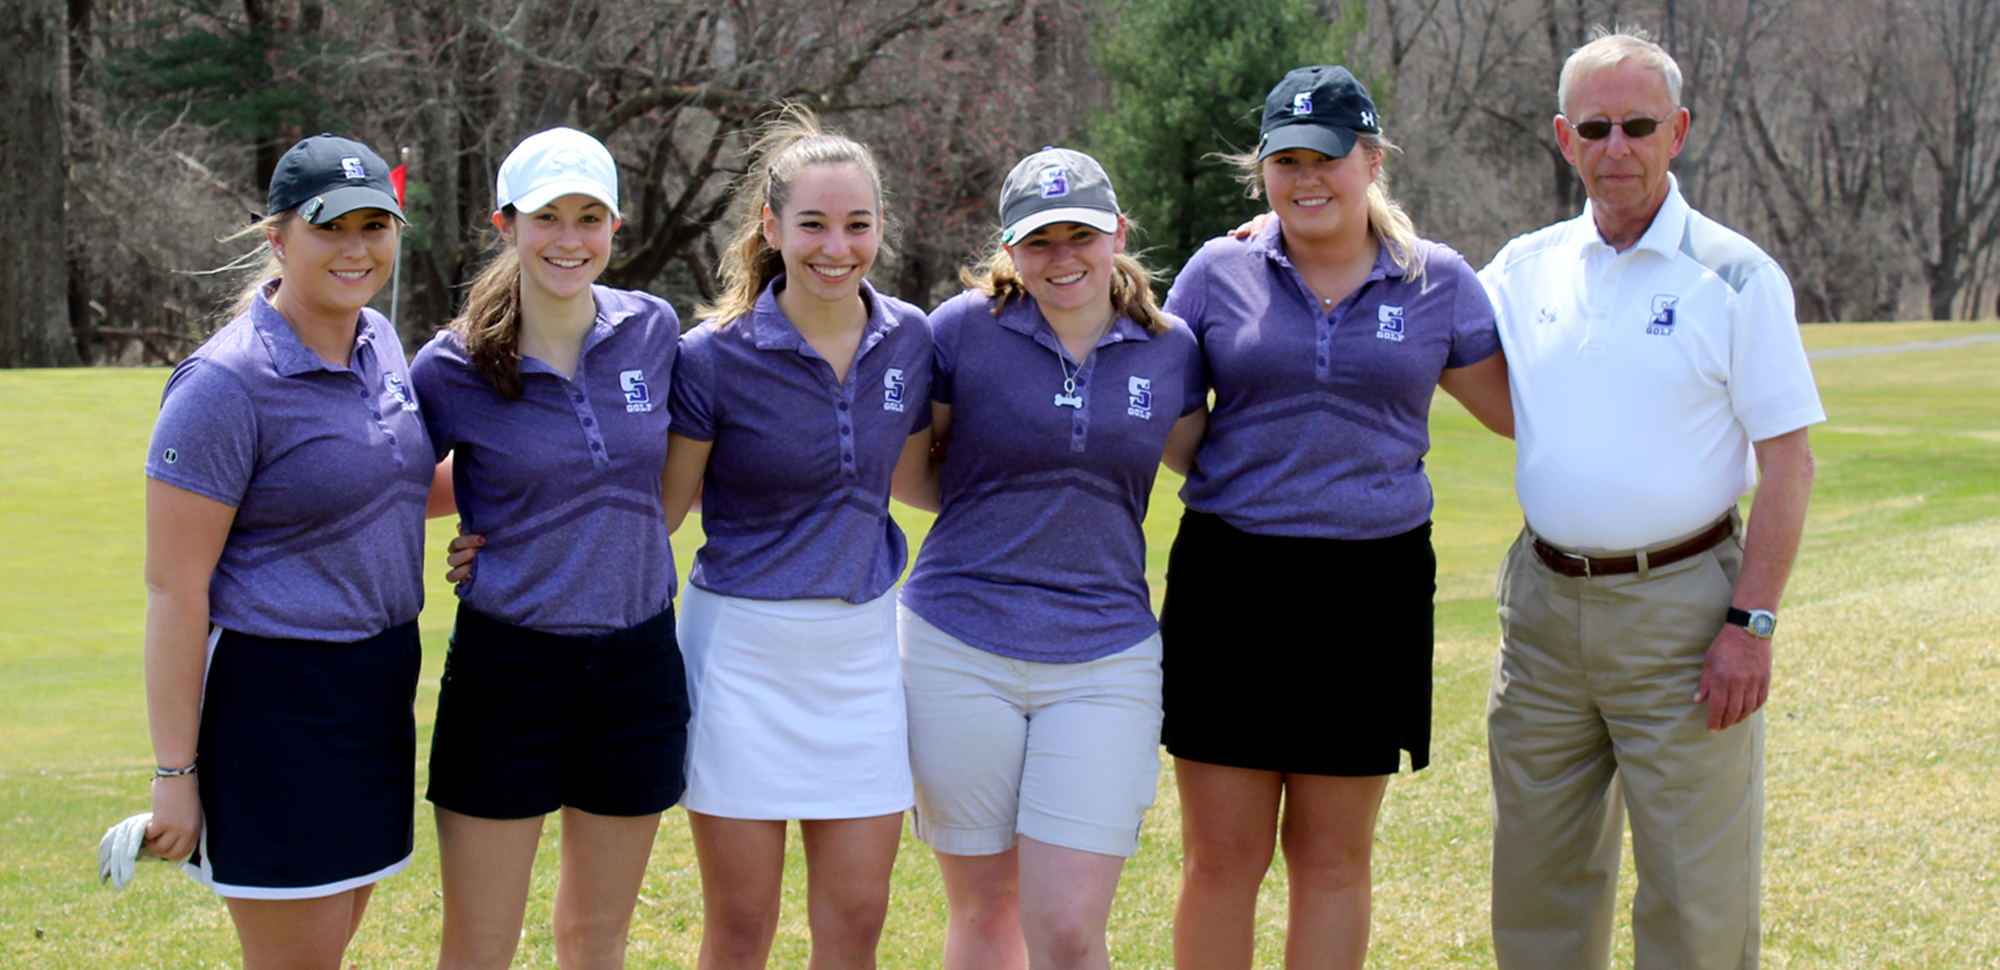 The women's golf team finished sixth at the Landmark Conference Championships on Sunday to close out the 2018-19 season.